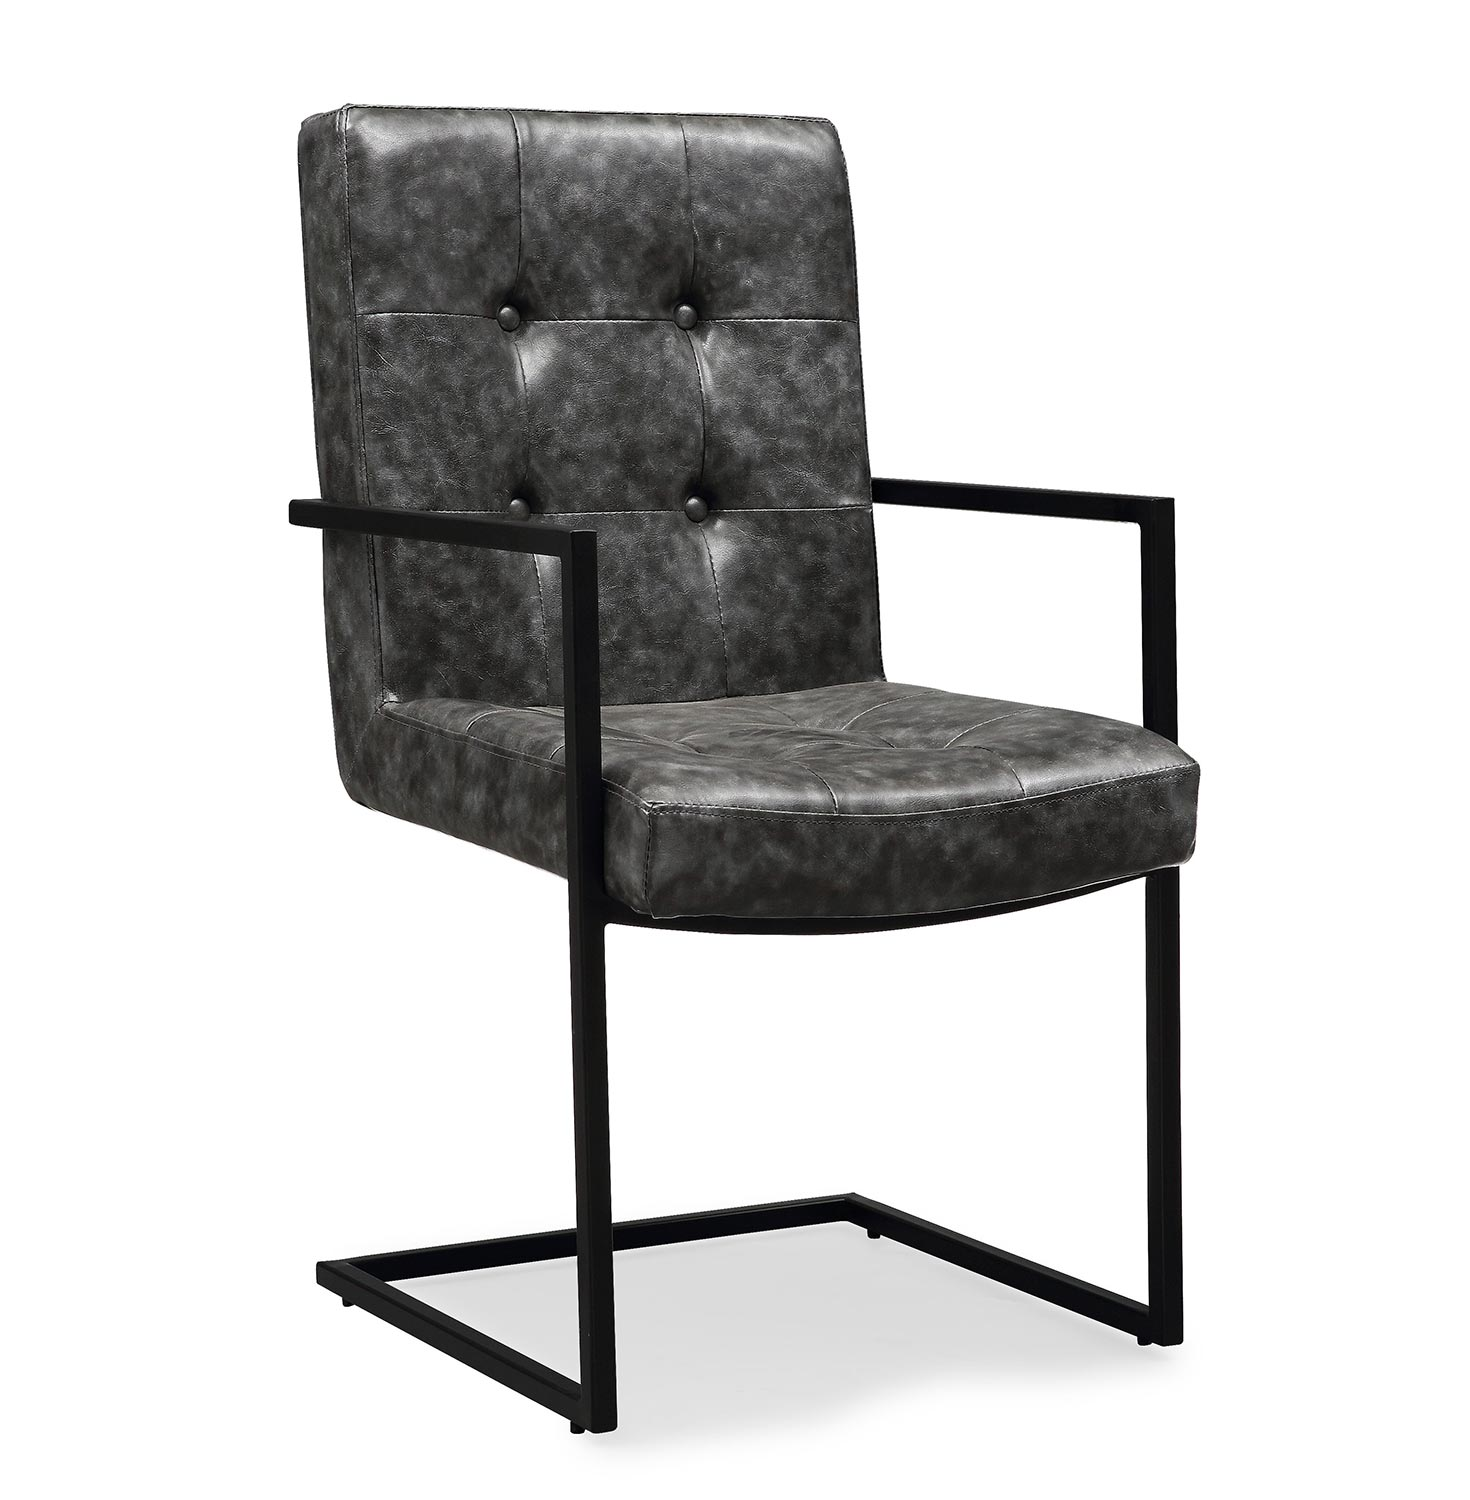 grey arm chair resin adirondack chairs lowes tov furniture stanley black g5468 at